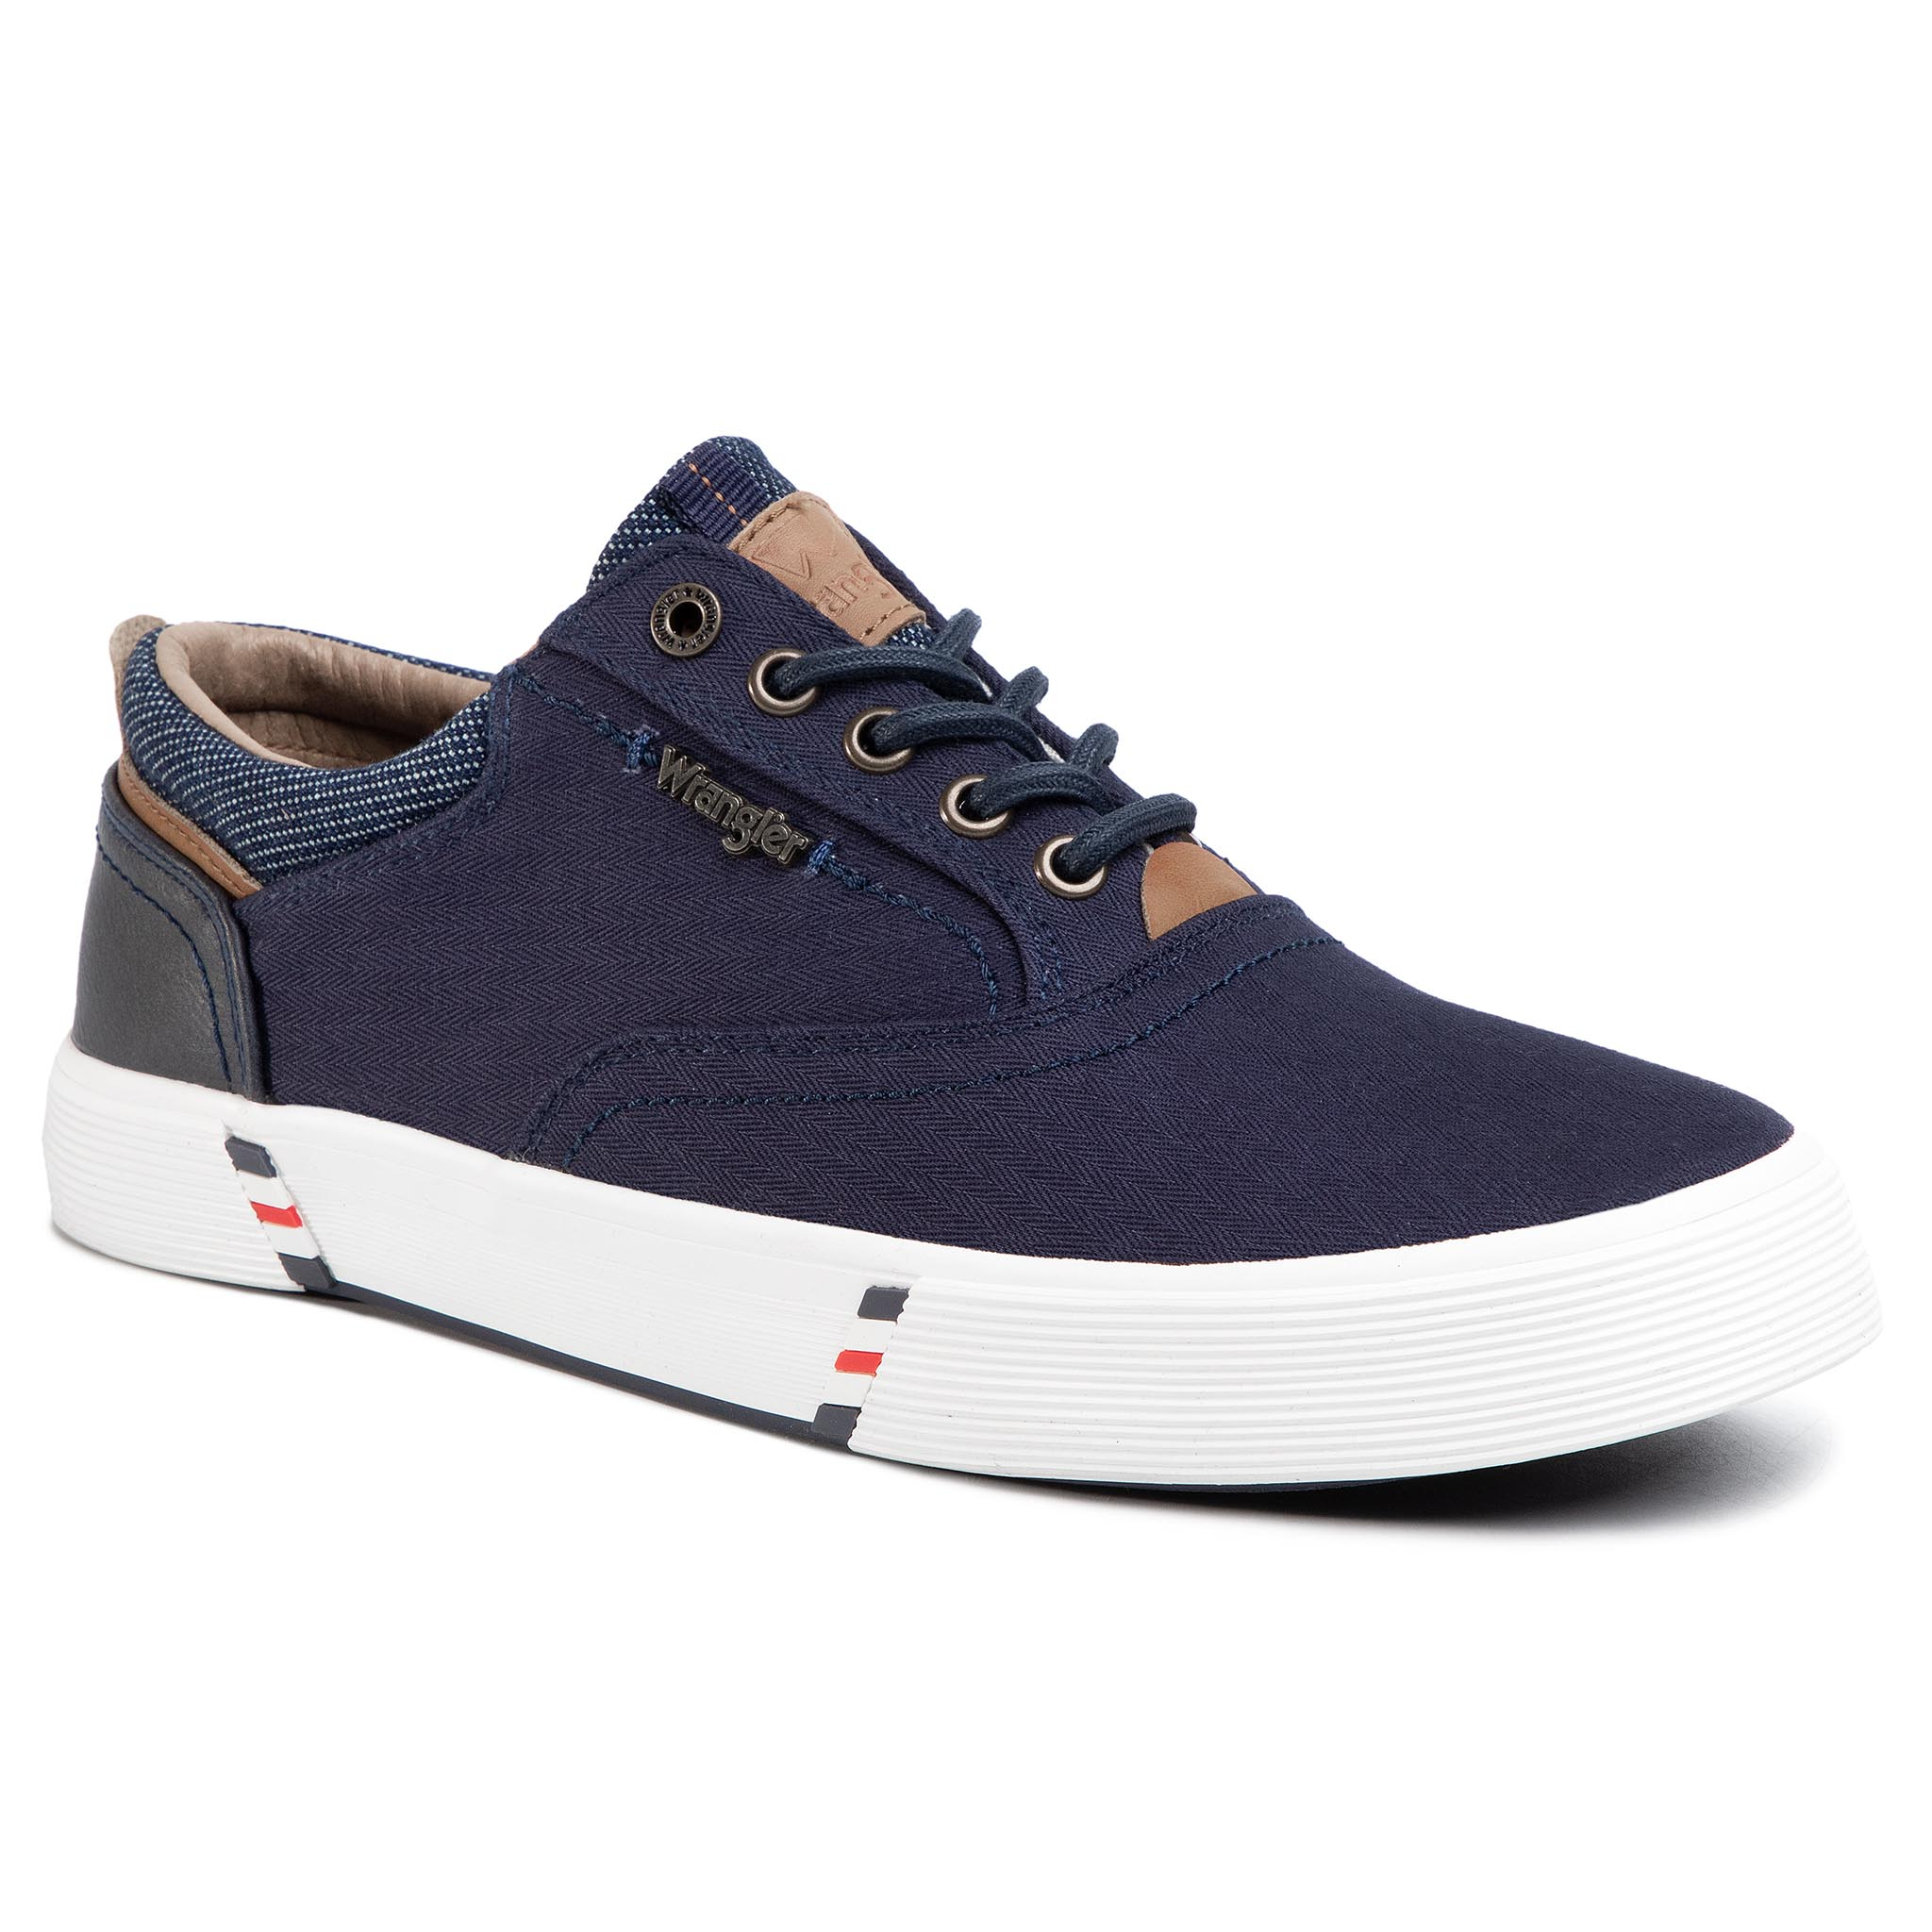 Teniși Wrangler - Monument Board Wm01001a Navy 016 imagine epantofi.ro 2021